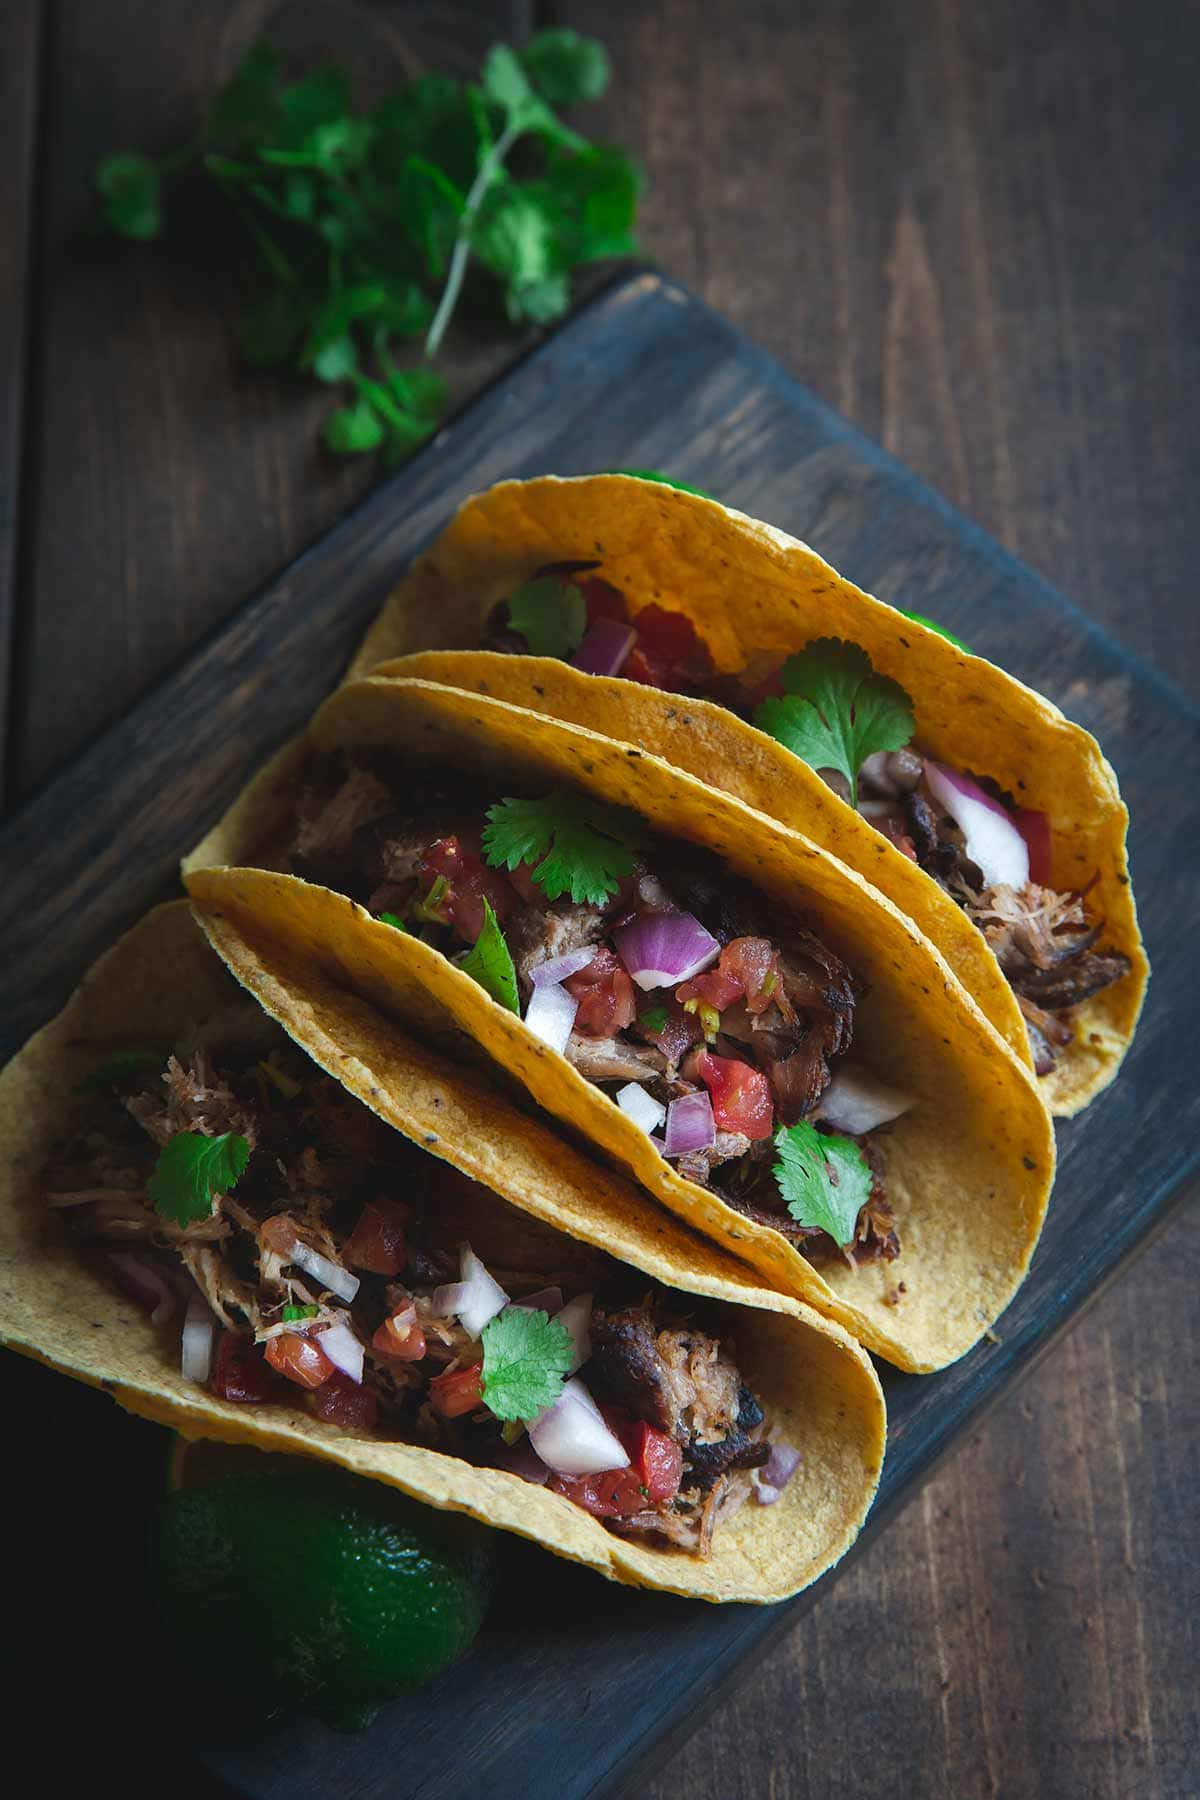 Three pork carnitas tacos lined up on a cutting board